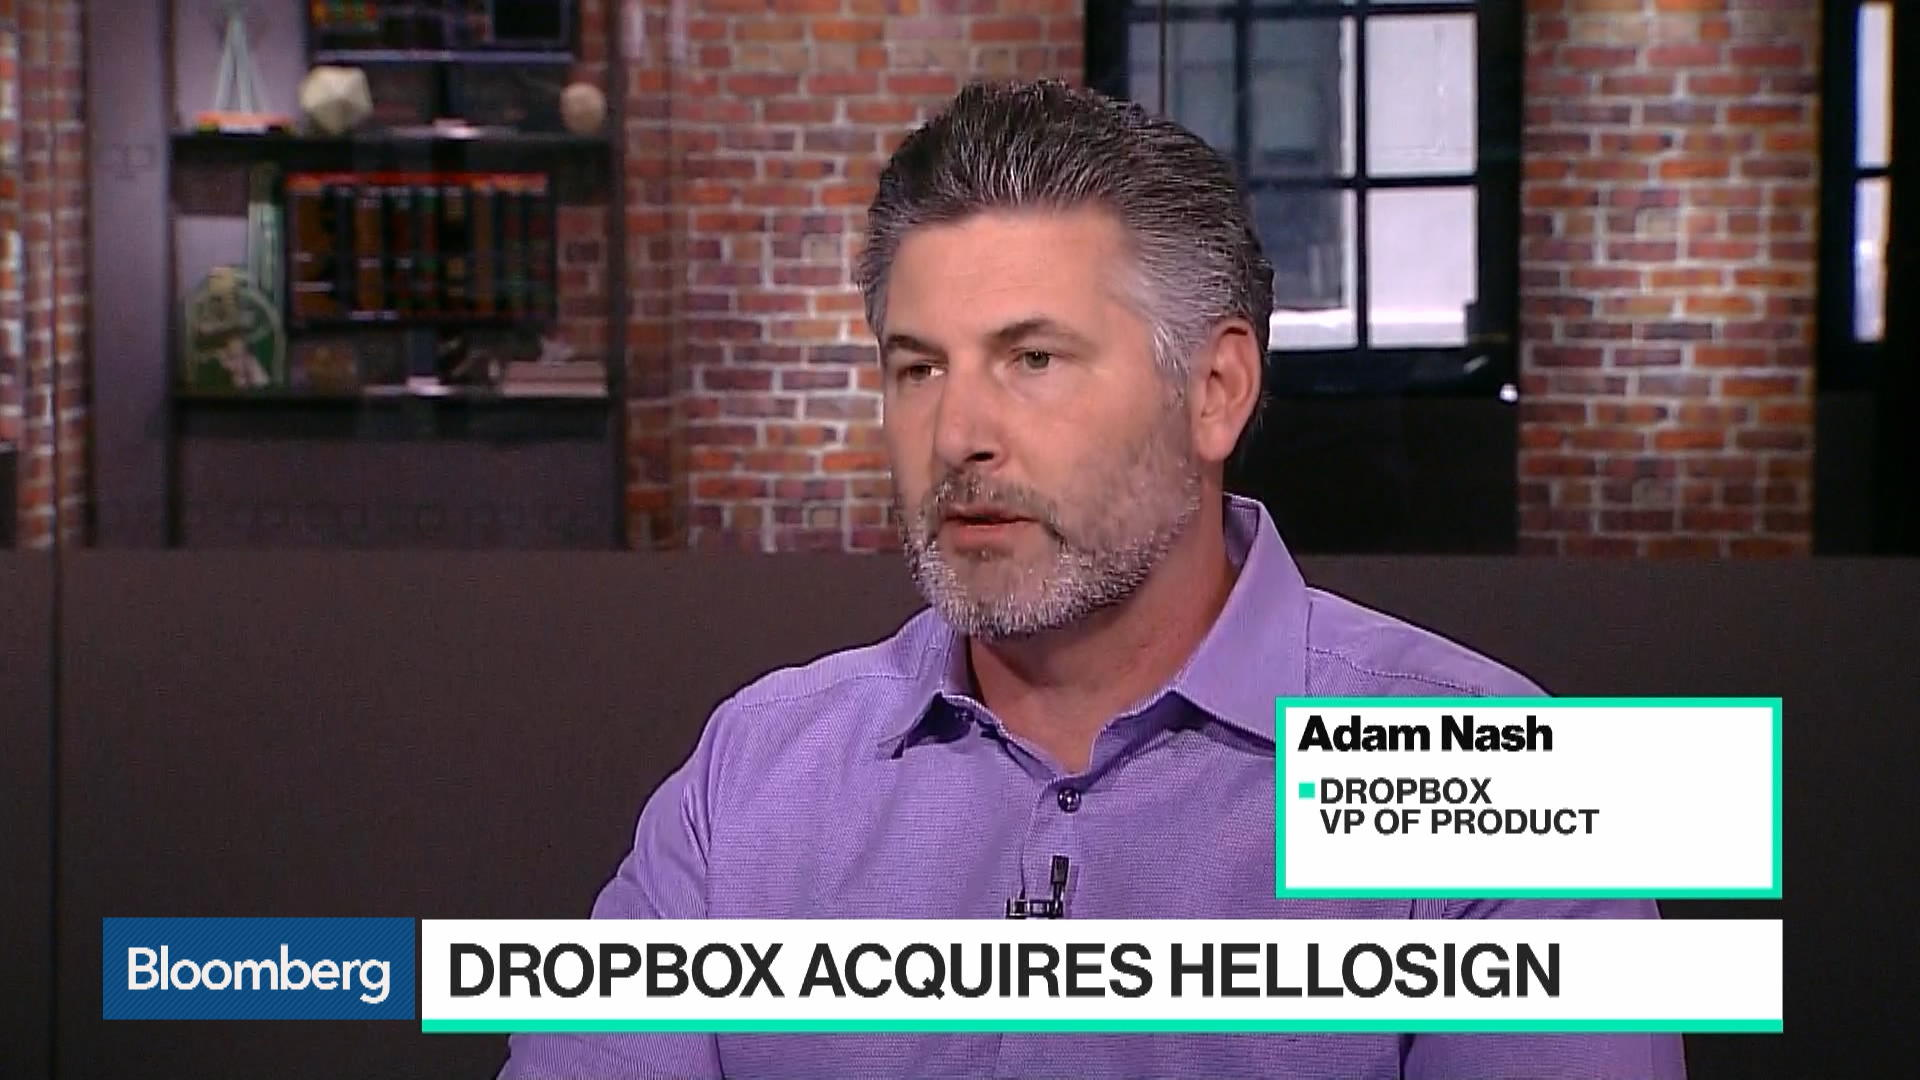 Dropbox Is Helping to Create a 'More Enlightened' Way to Work, VP Nash Says